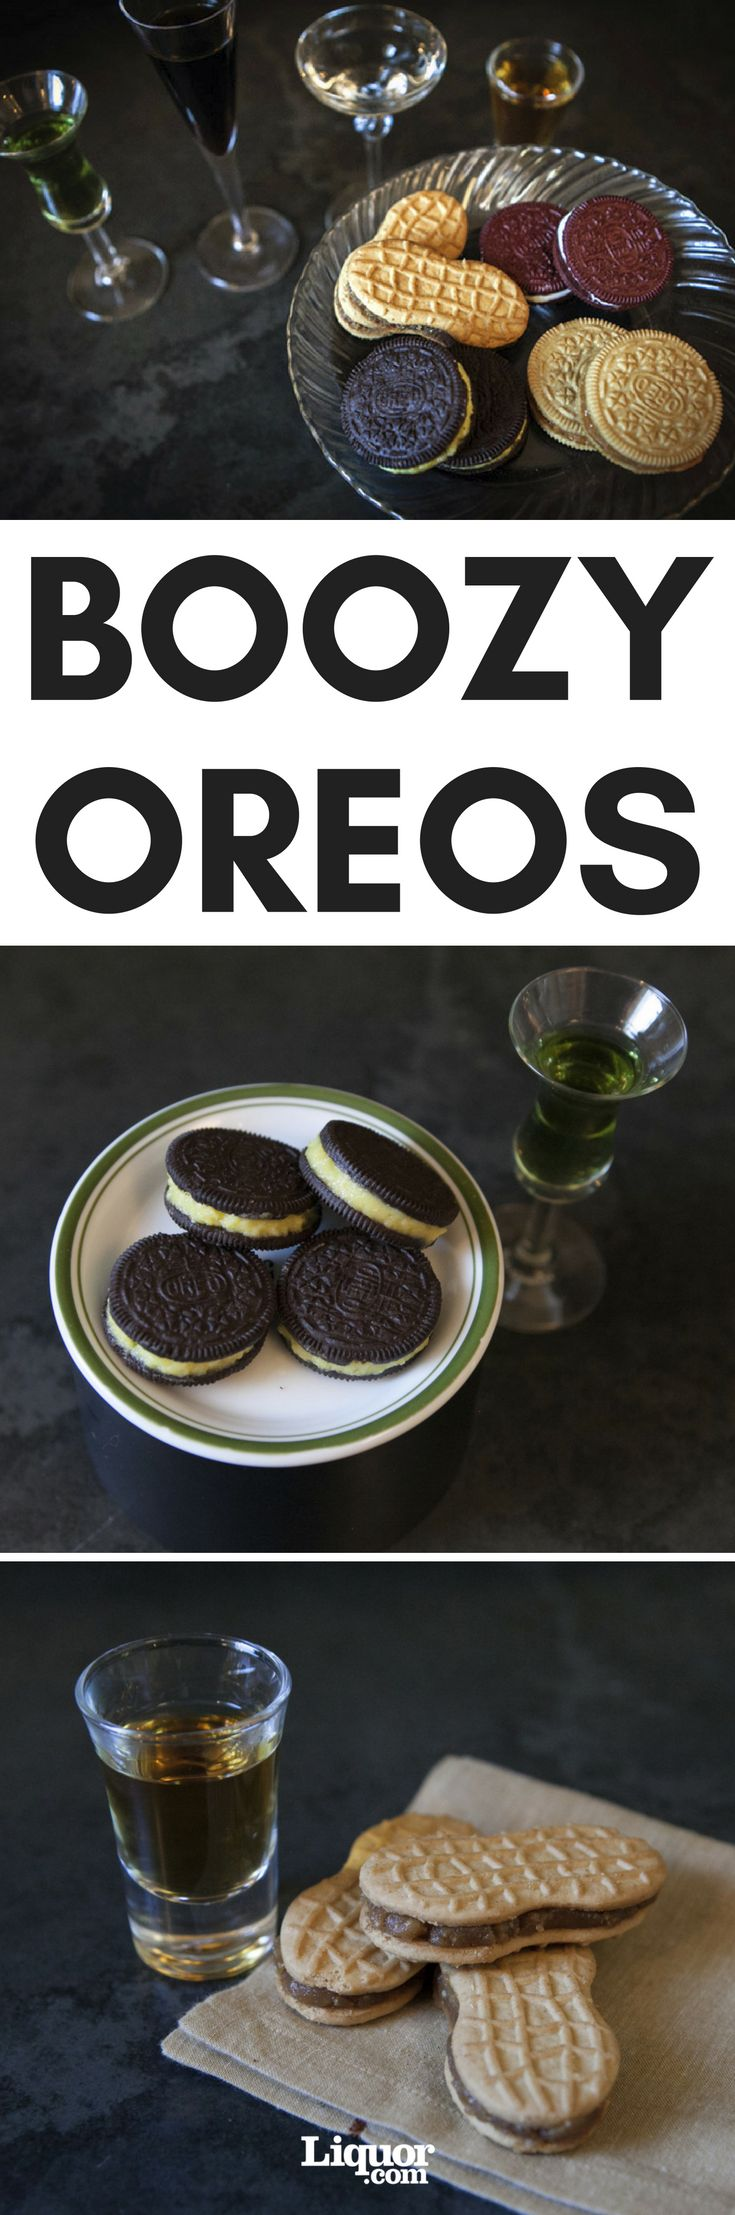 Upgrade Your Oreos With Boozy Fillings!  They're fun and sweet and boozy—great for parties, the cookie equivalent of Jell-O Shots. Crazy Chartreuse Oreos, Sinful Cinnamon Bu Oreos, Boozy Red Velvet Cake Oreos and and Naughty Nutter Butters complete the list of sweet alcoholic treats.